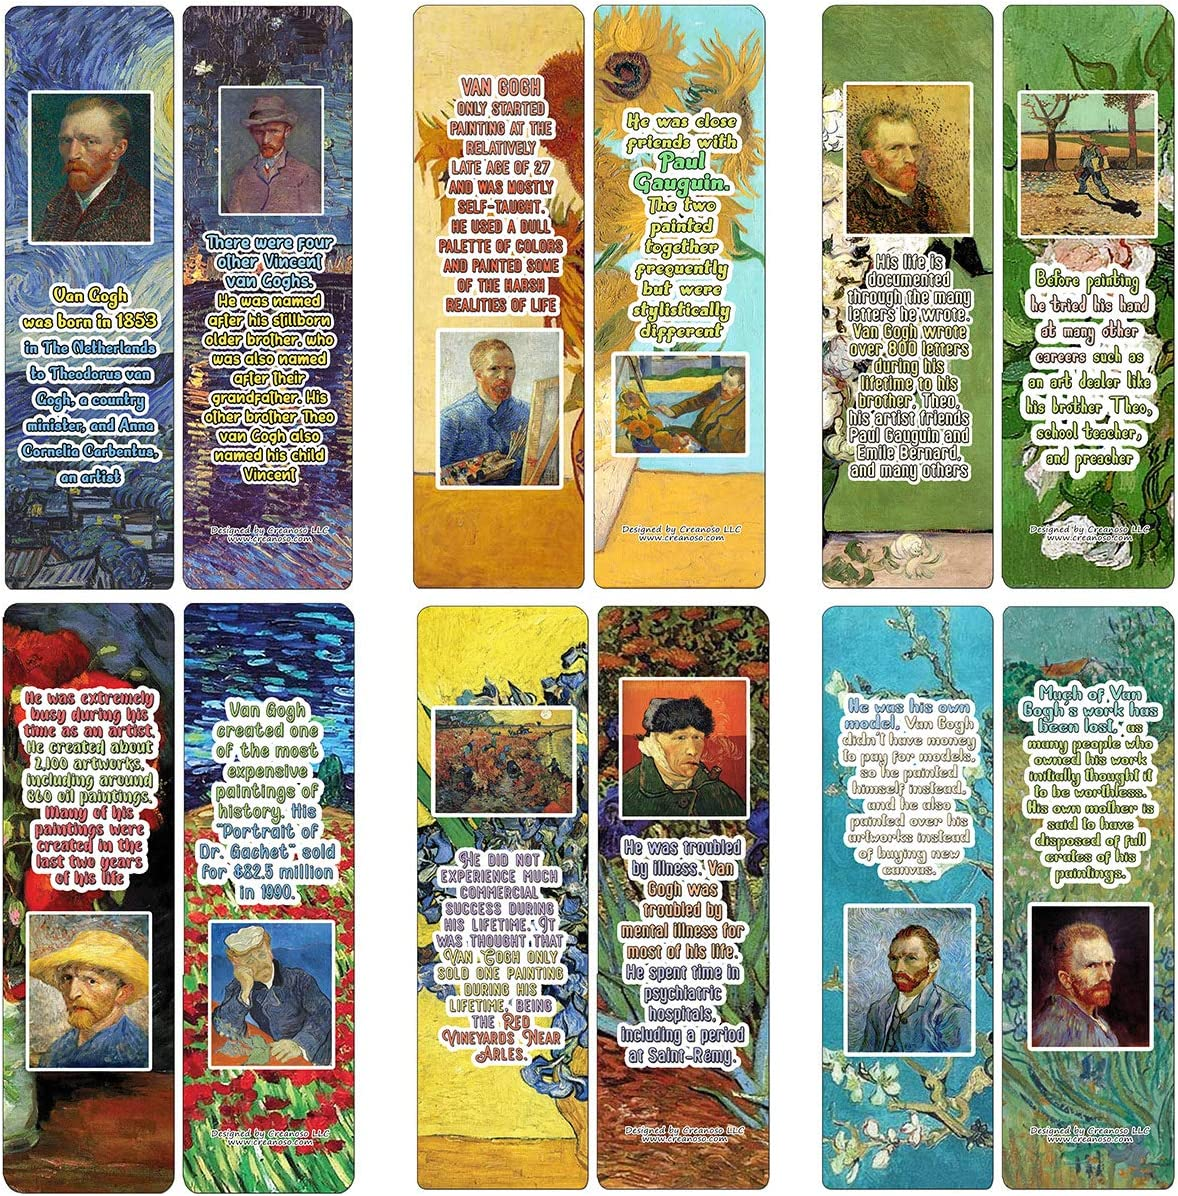 Creanoso Vincent Van Gogh Bookmarks Cards - Interesting Facts (12-Pack) - Stocking Stuffers Premium Quality Gift Ideas for Children, Teens, Adults - Corporate Giveaways & Party Favors